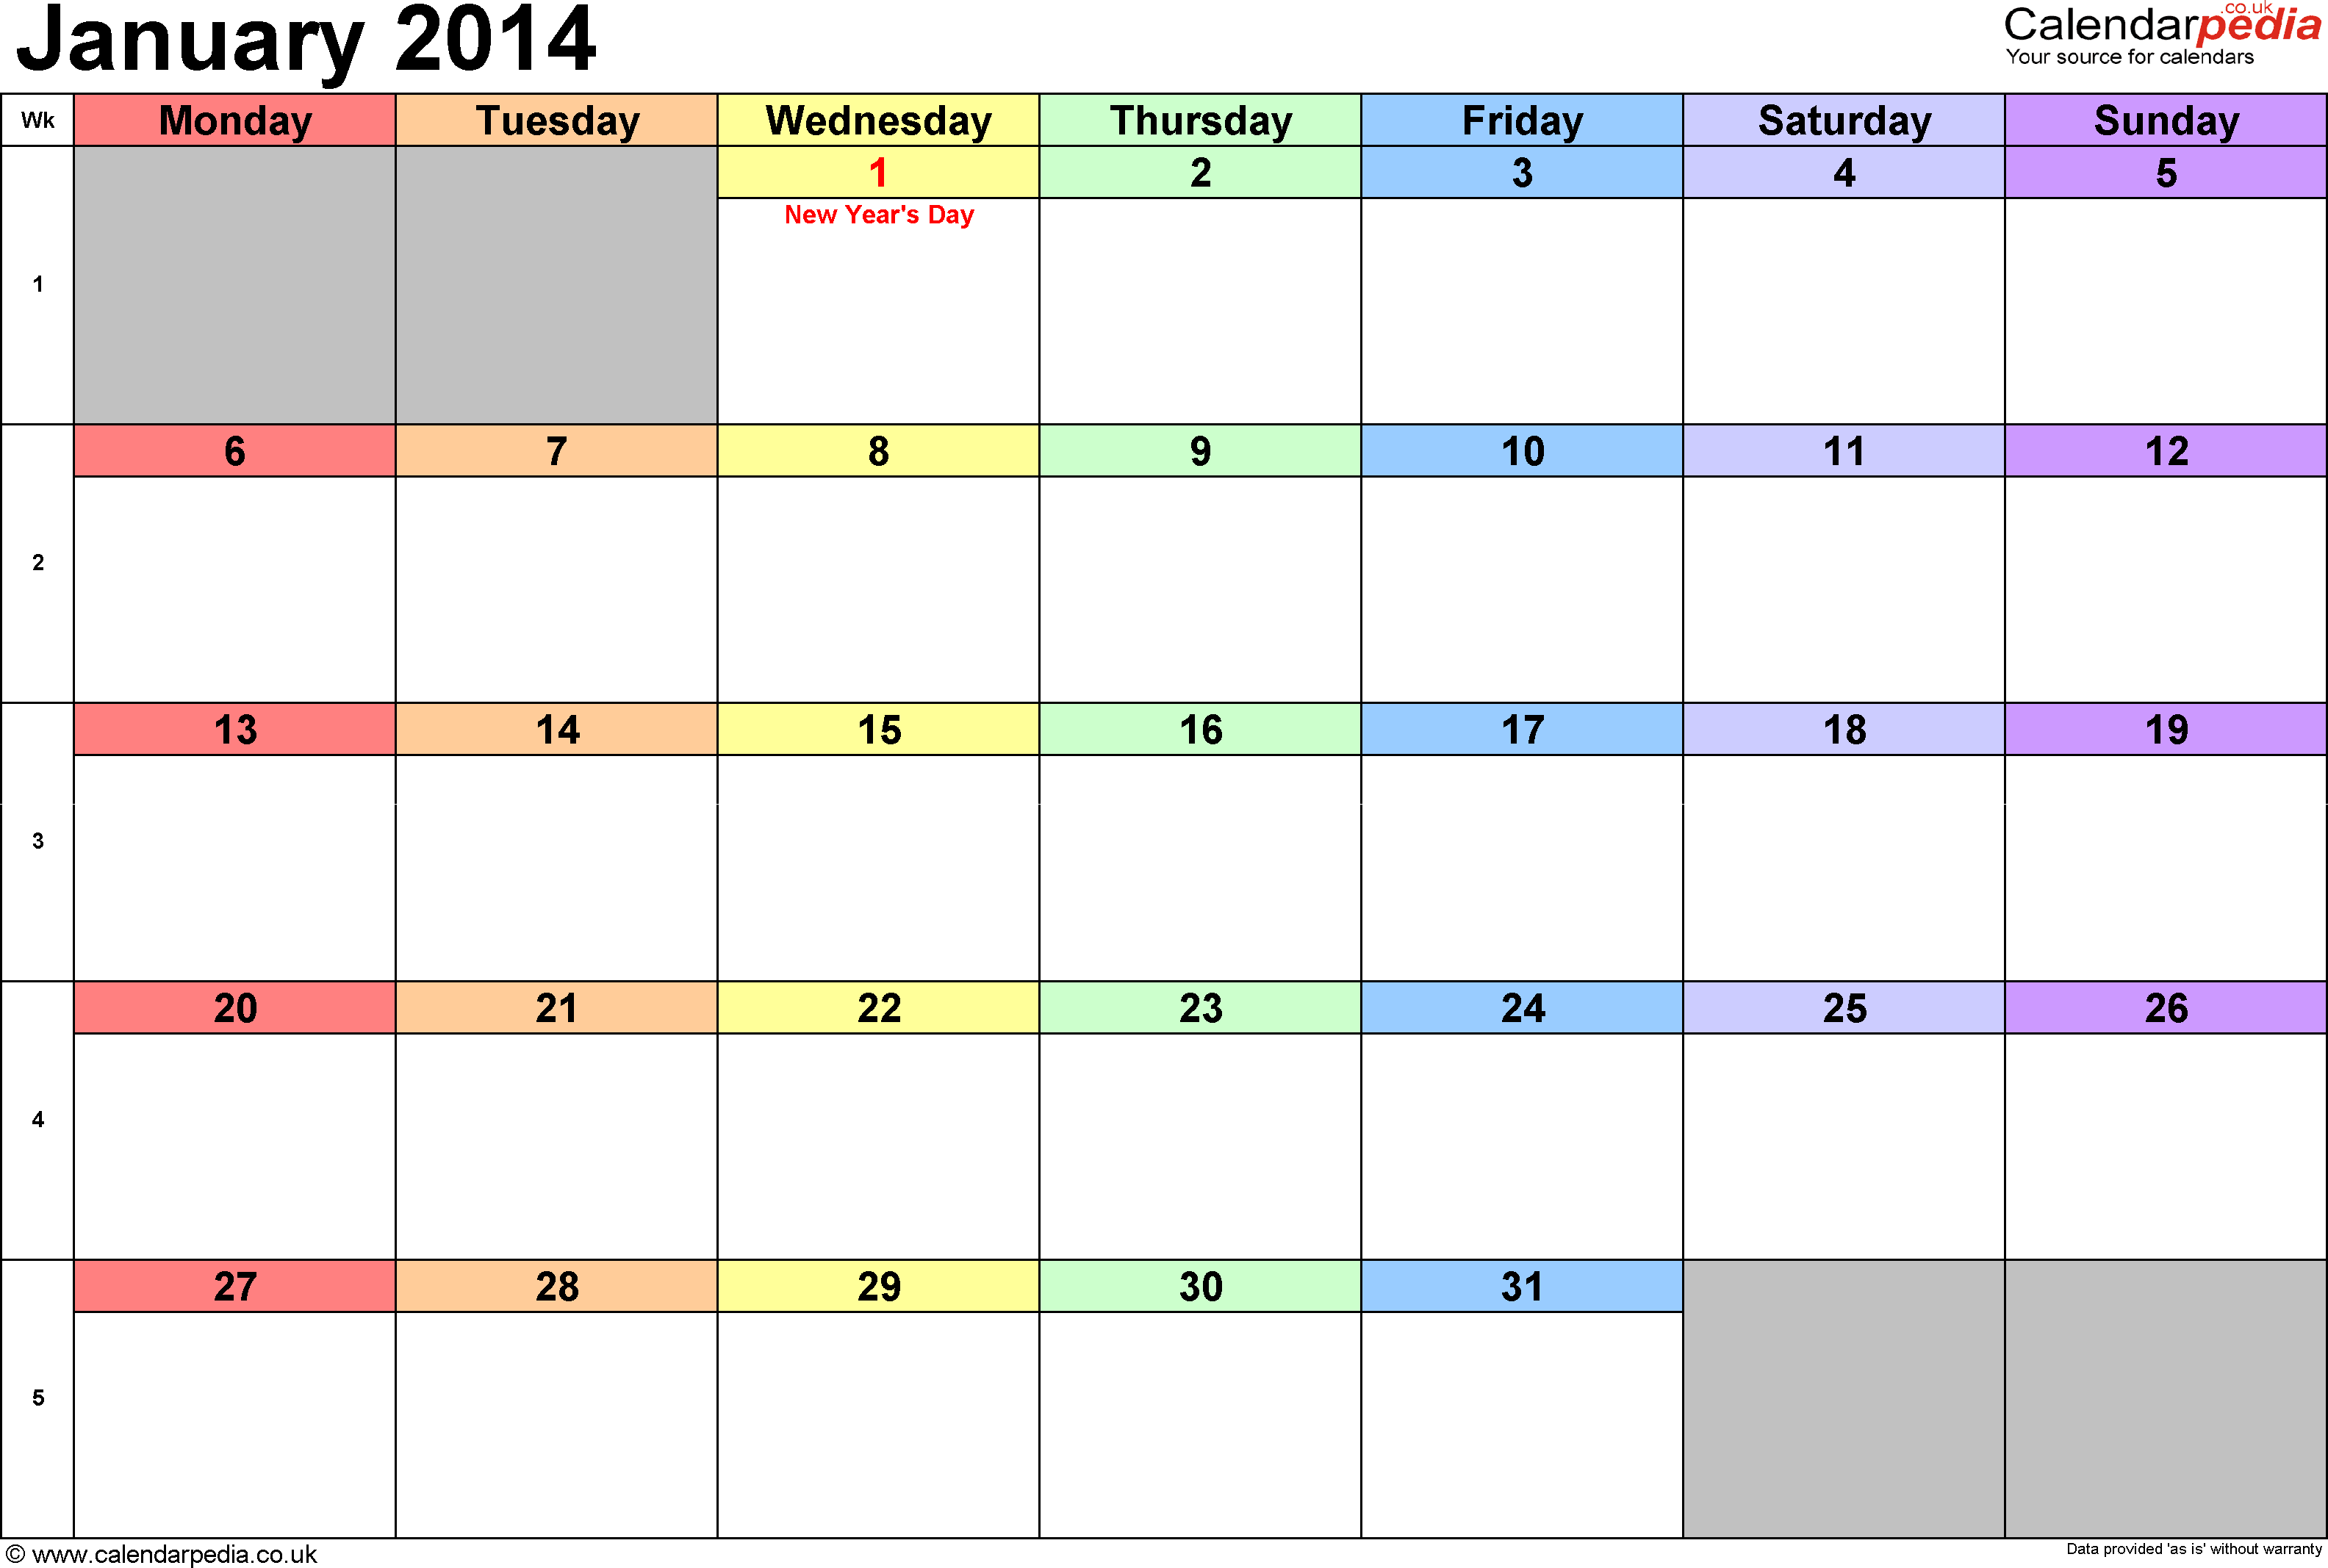 Calendar January 2014, landscape orientation, 1 page, with UK bank holidays and week numbers